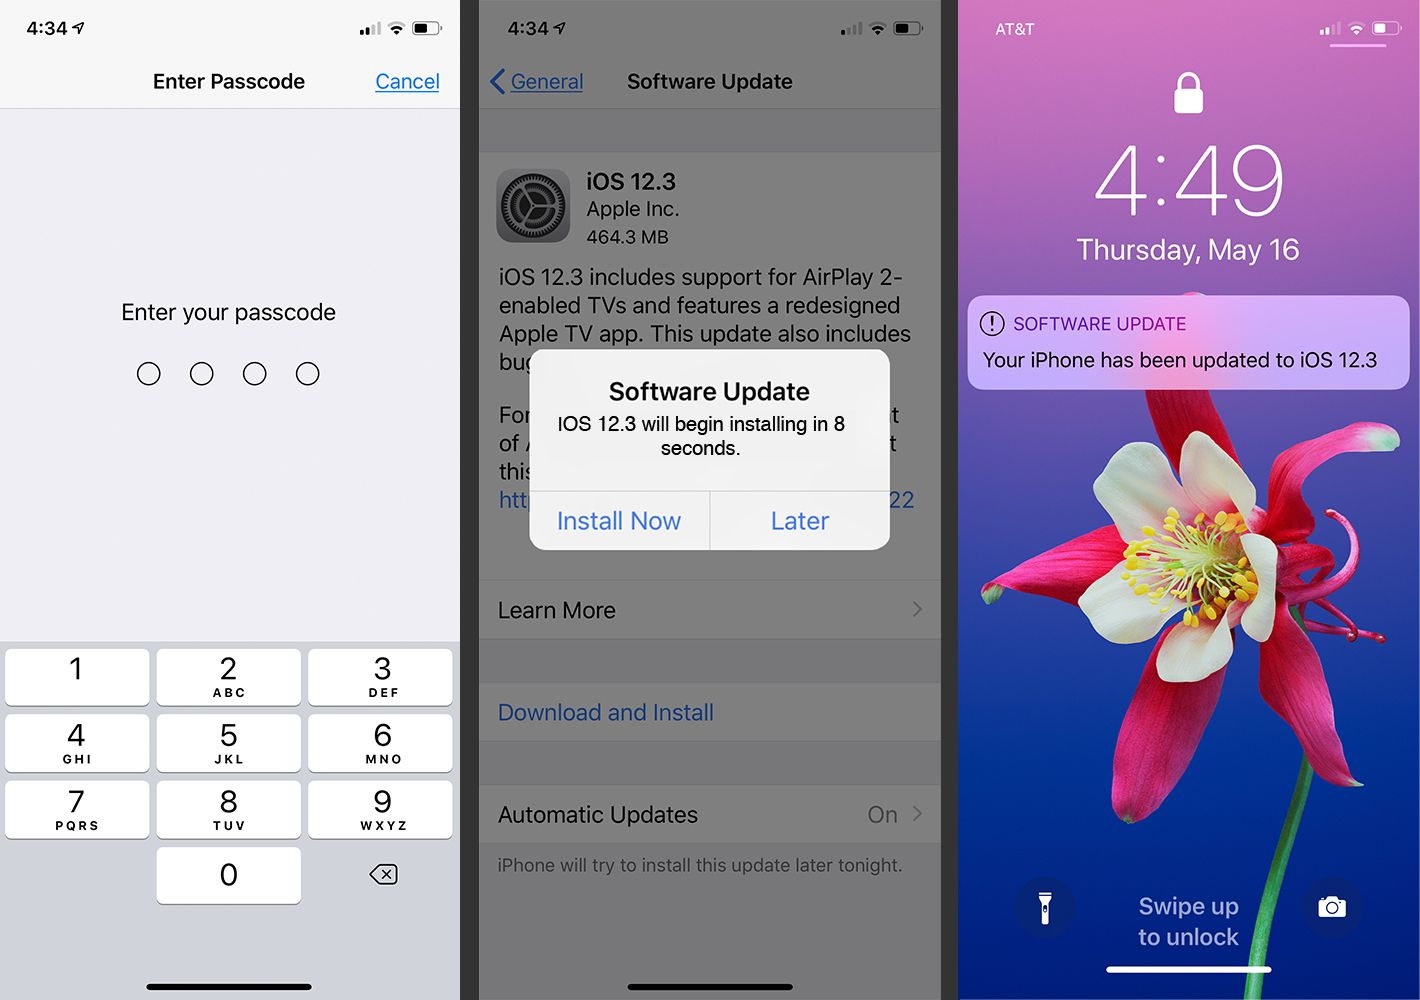 The Passcode, Software Update and Lock screens on the iPhone